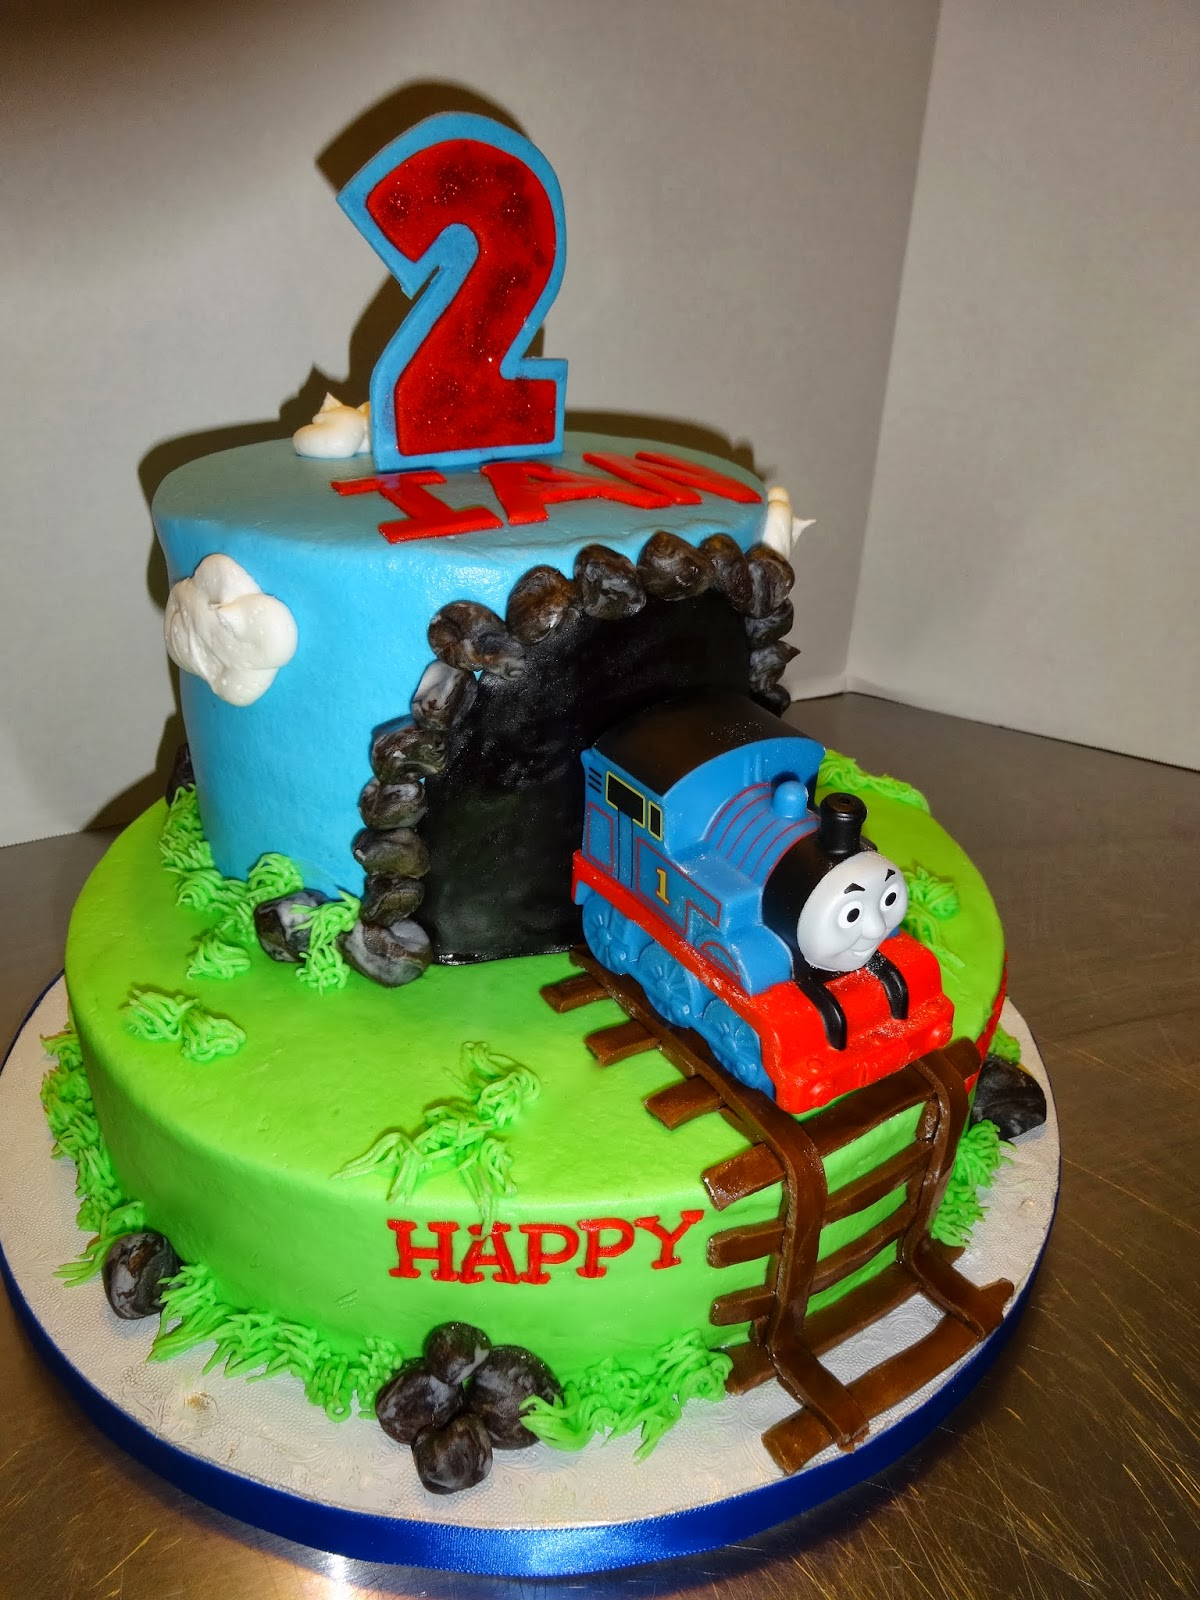 Cake Images Of Thomas The Train : Cakes by Paula: Thomas the Train birthday Party